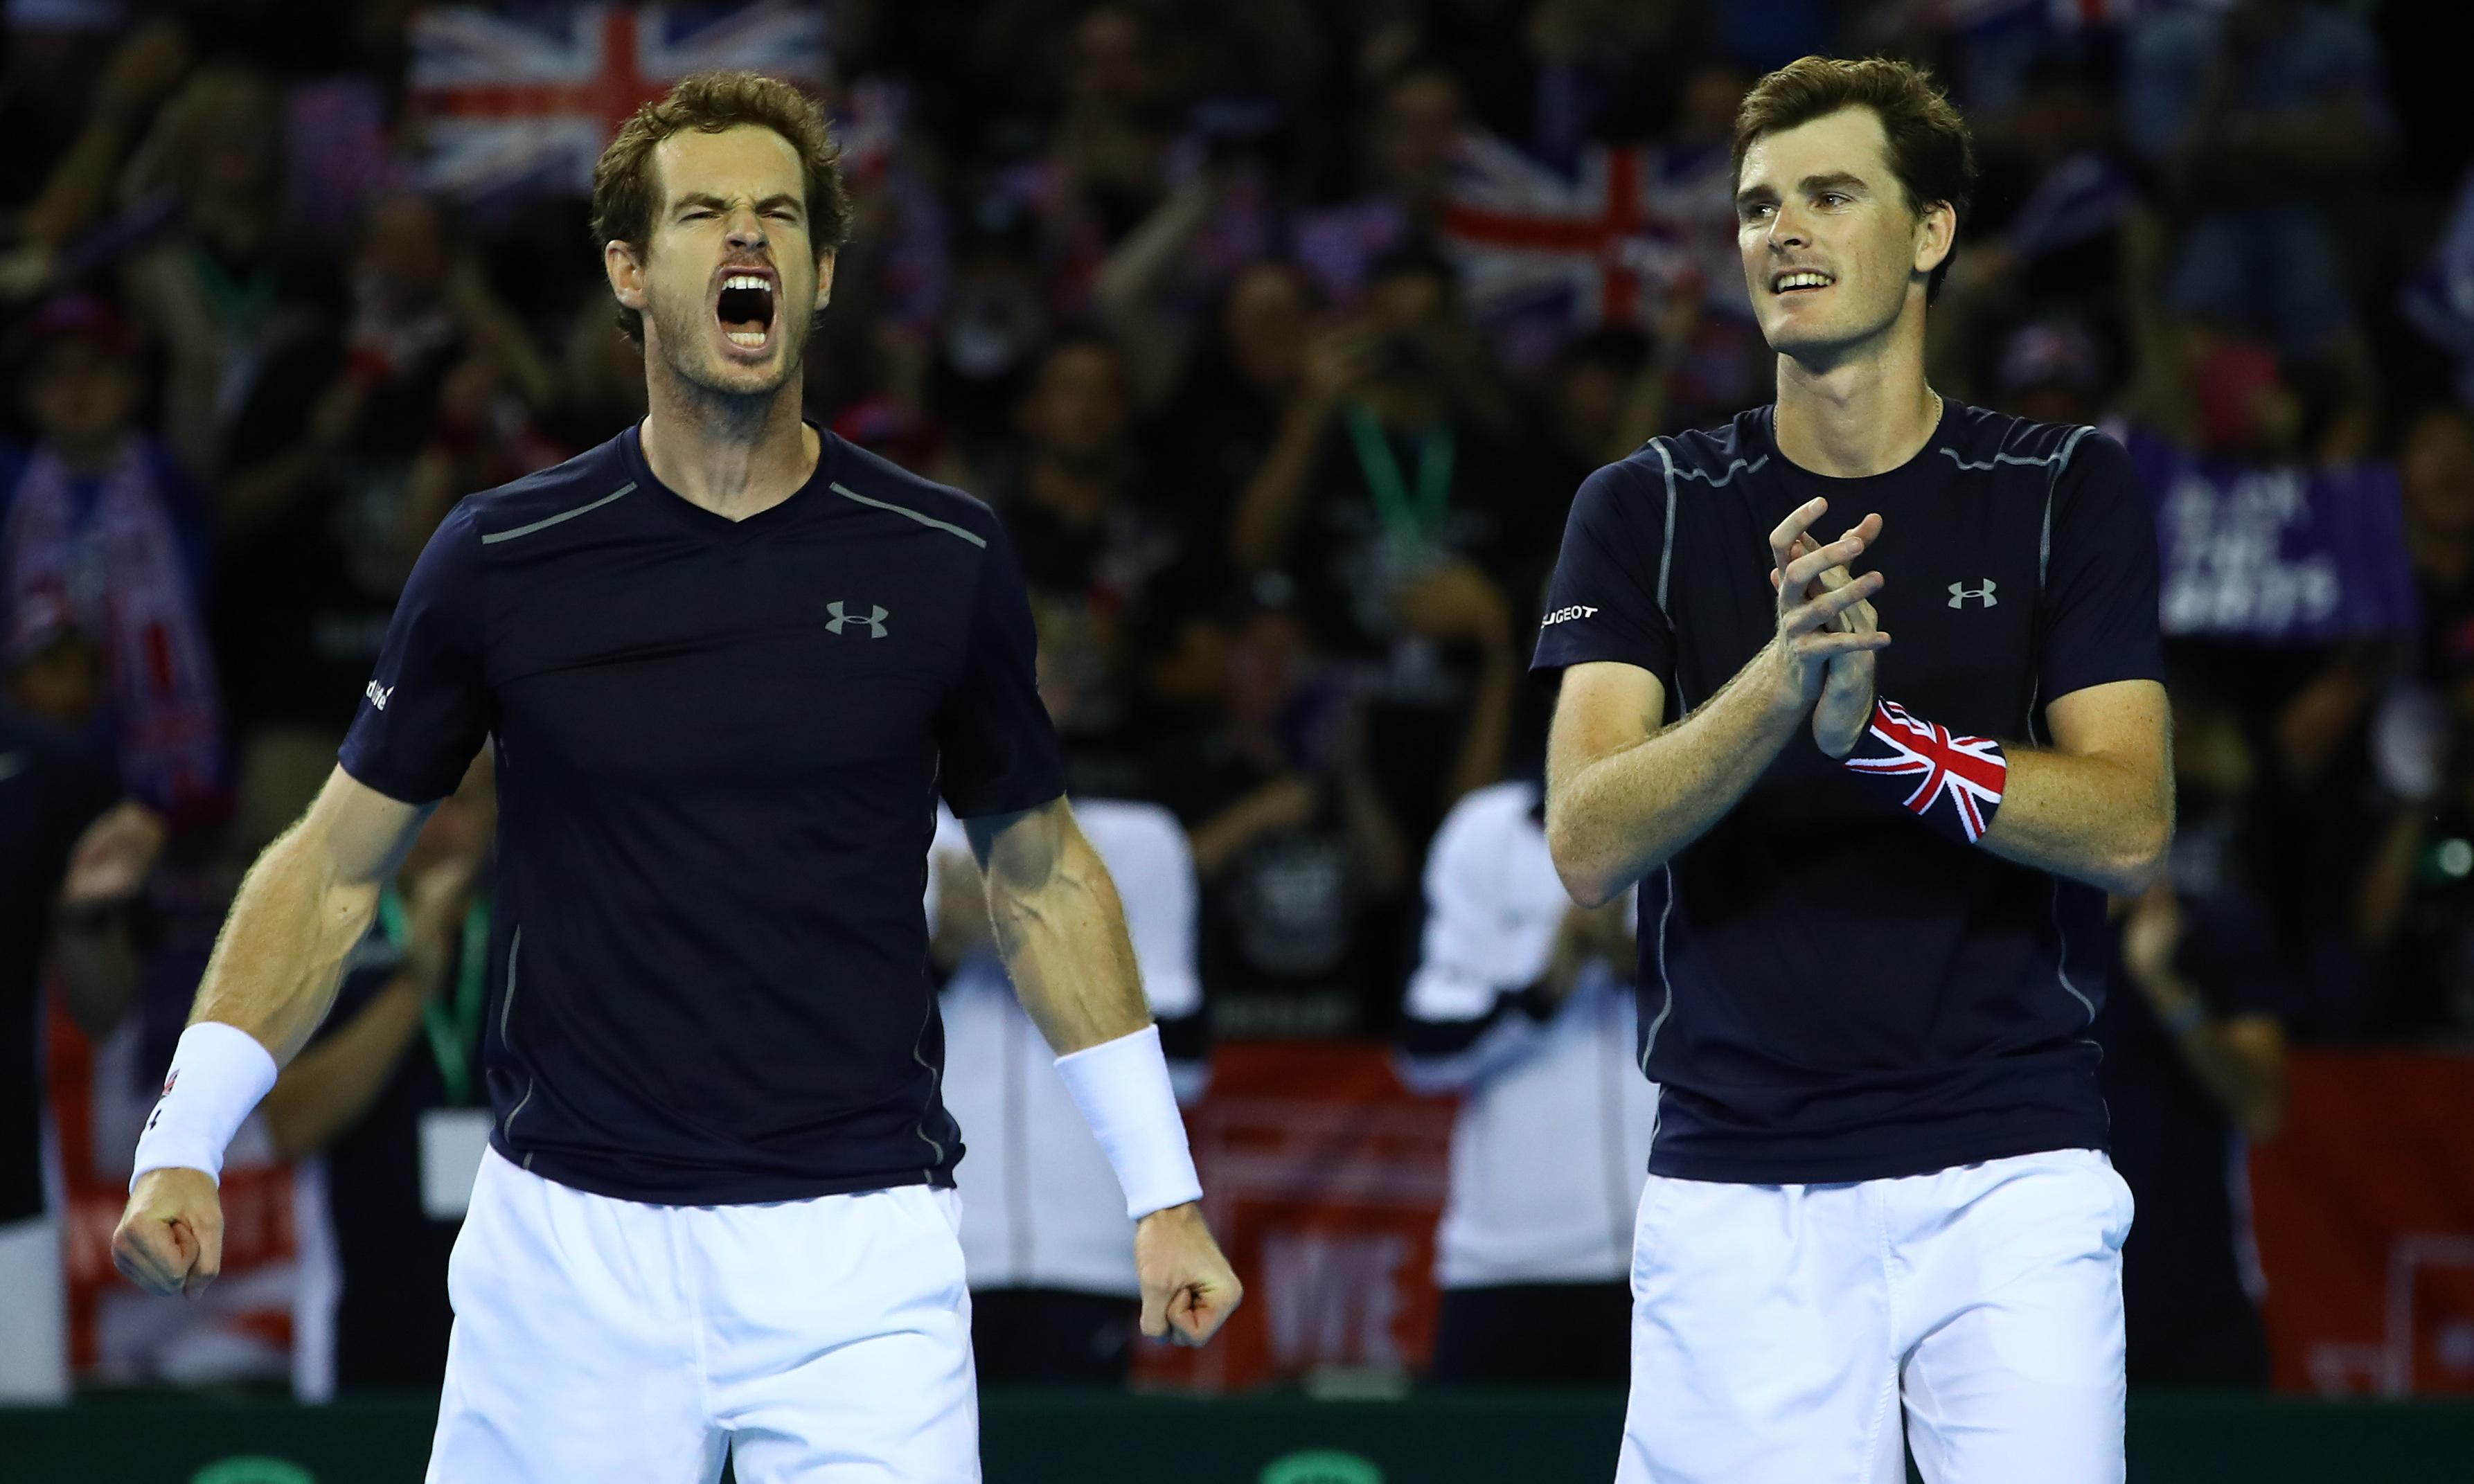 Andy Murray and brother Jamie team up for doubles at Washington Citi Open